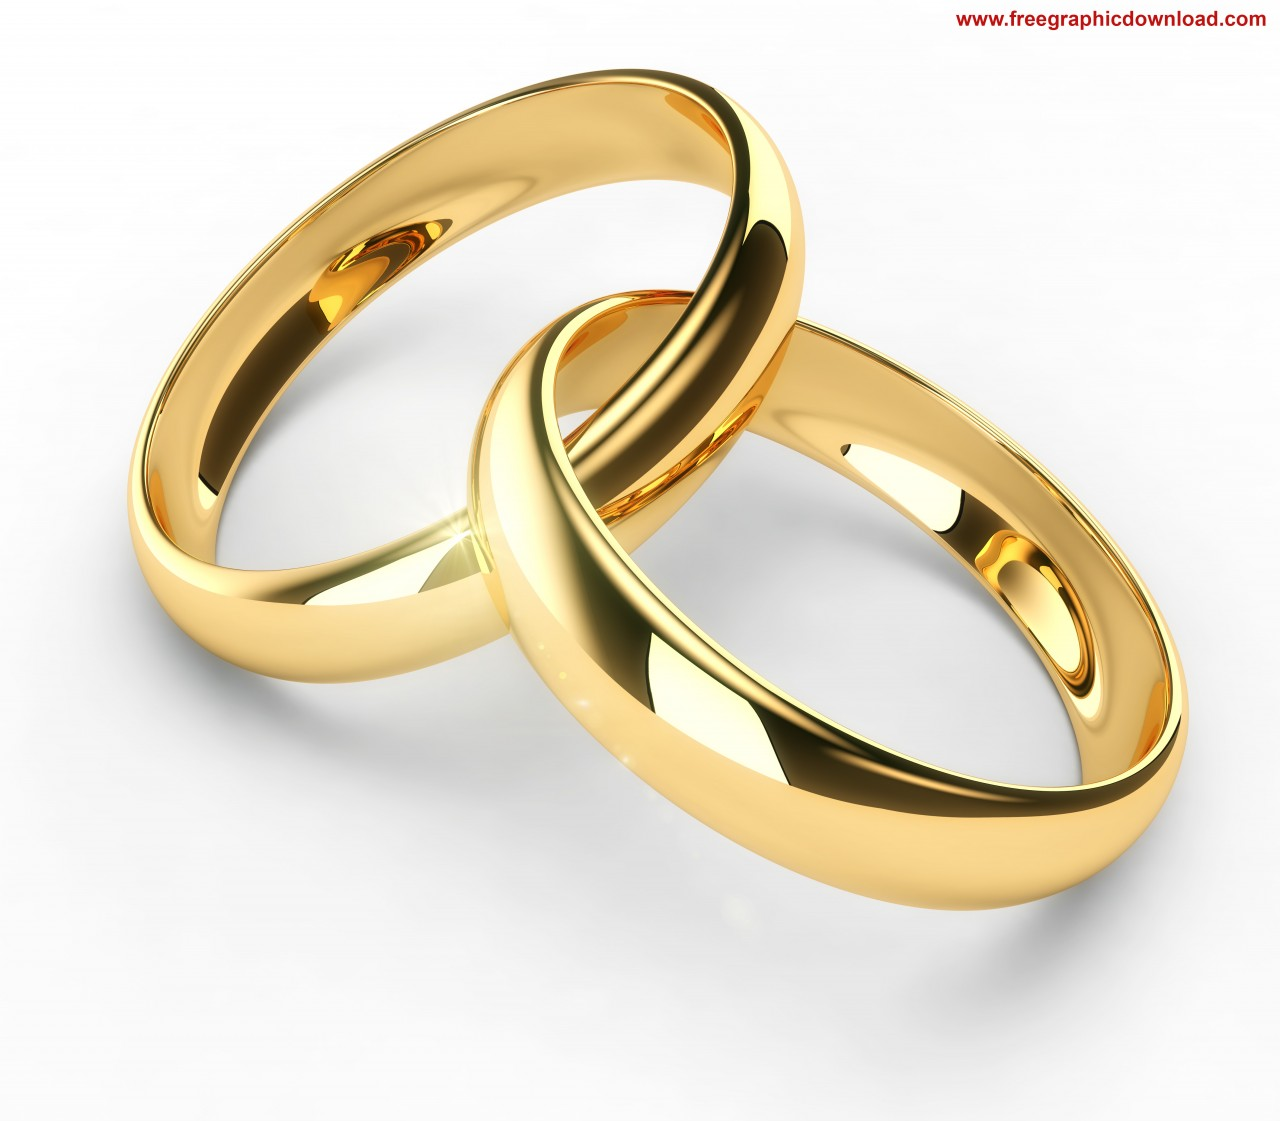 gold wedding rings clip art the wedding design guide - Pictures Of Wedding Rings